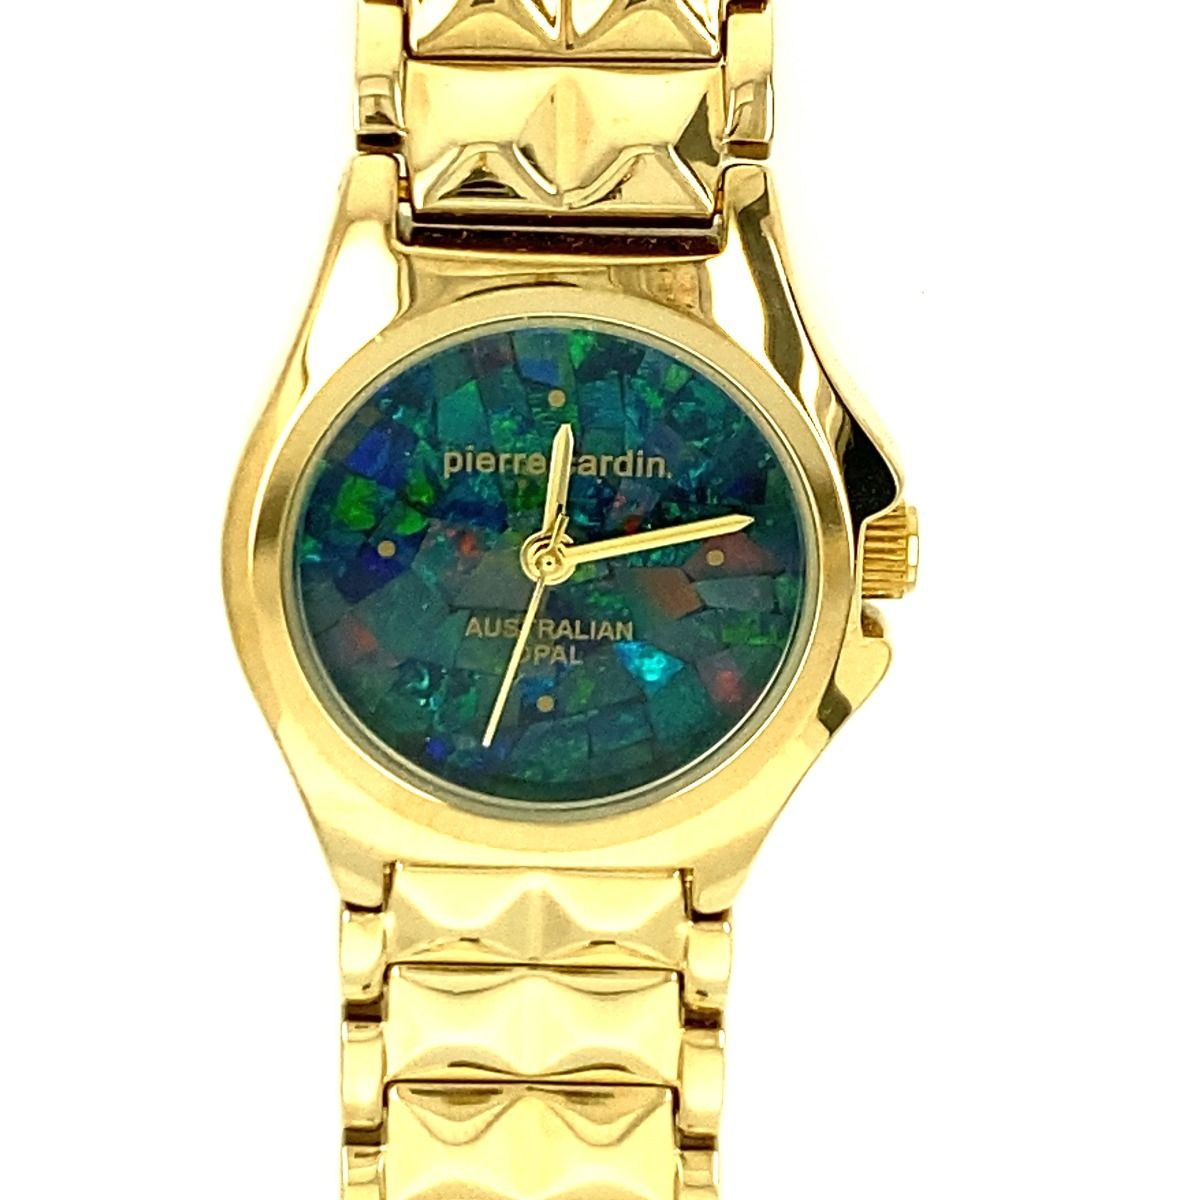 Pierre Cardin Ladies Opal Face Watch with polished gold band